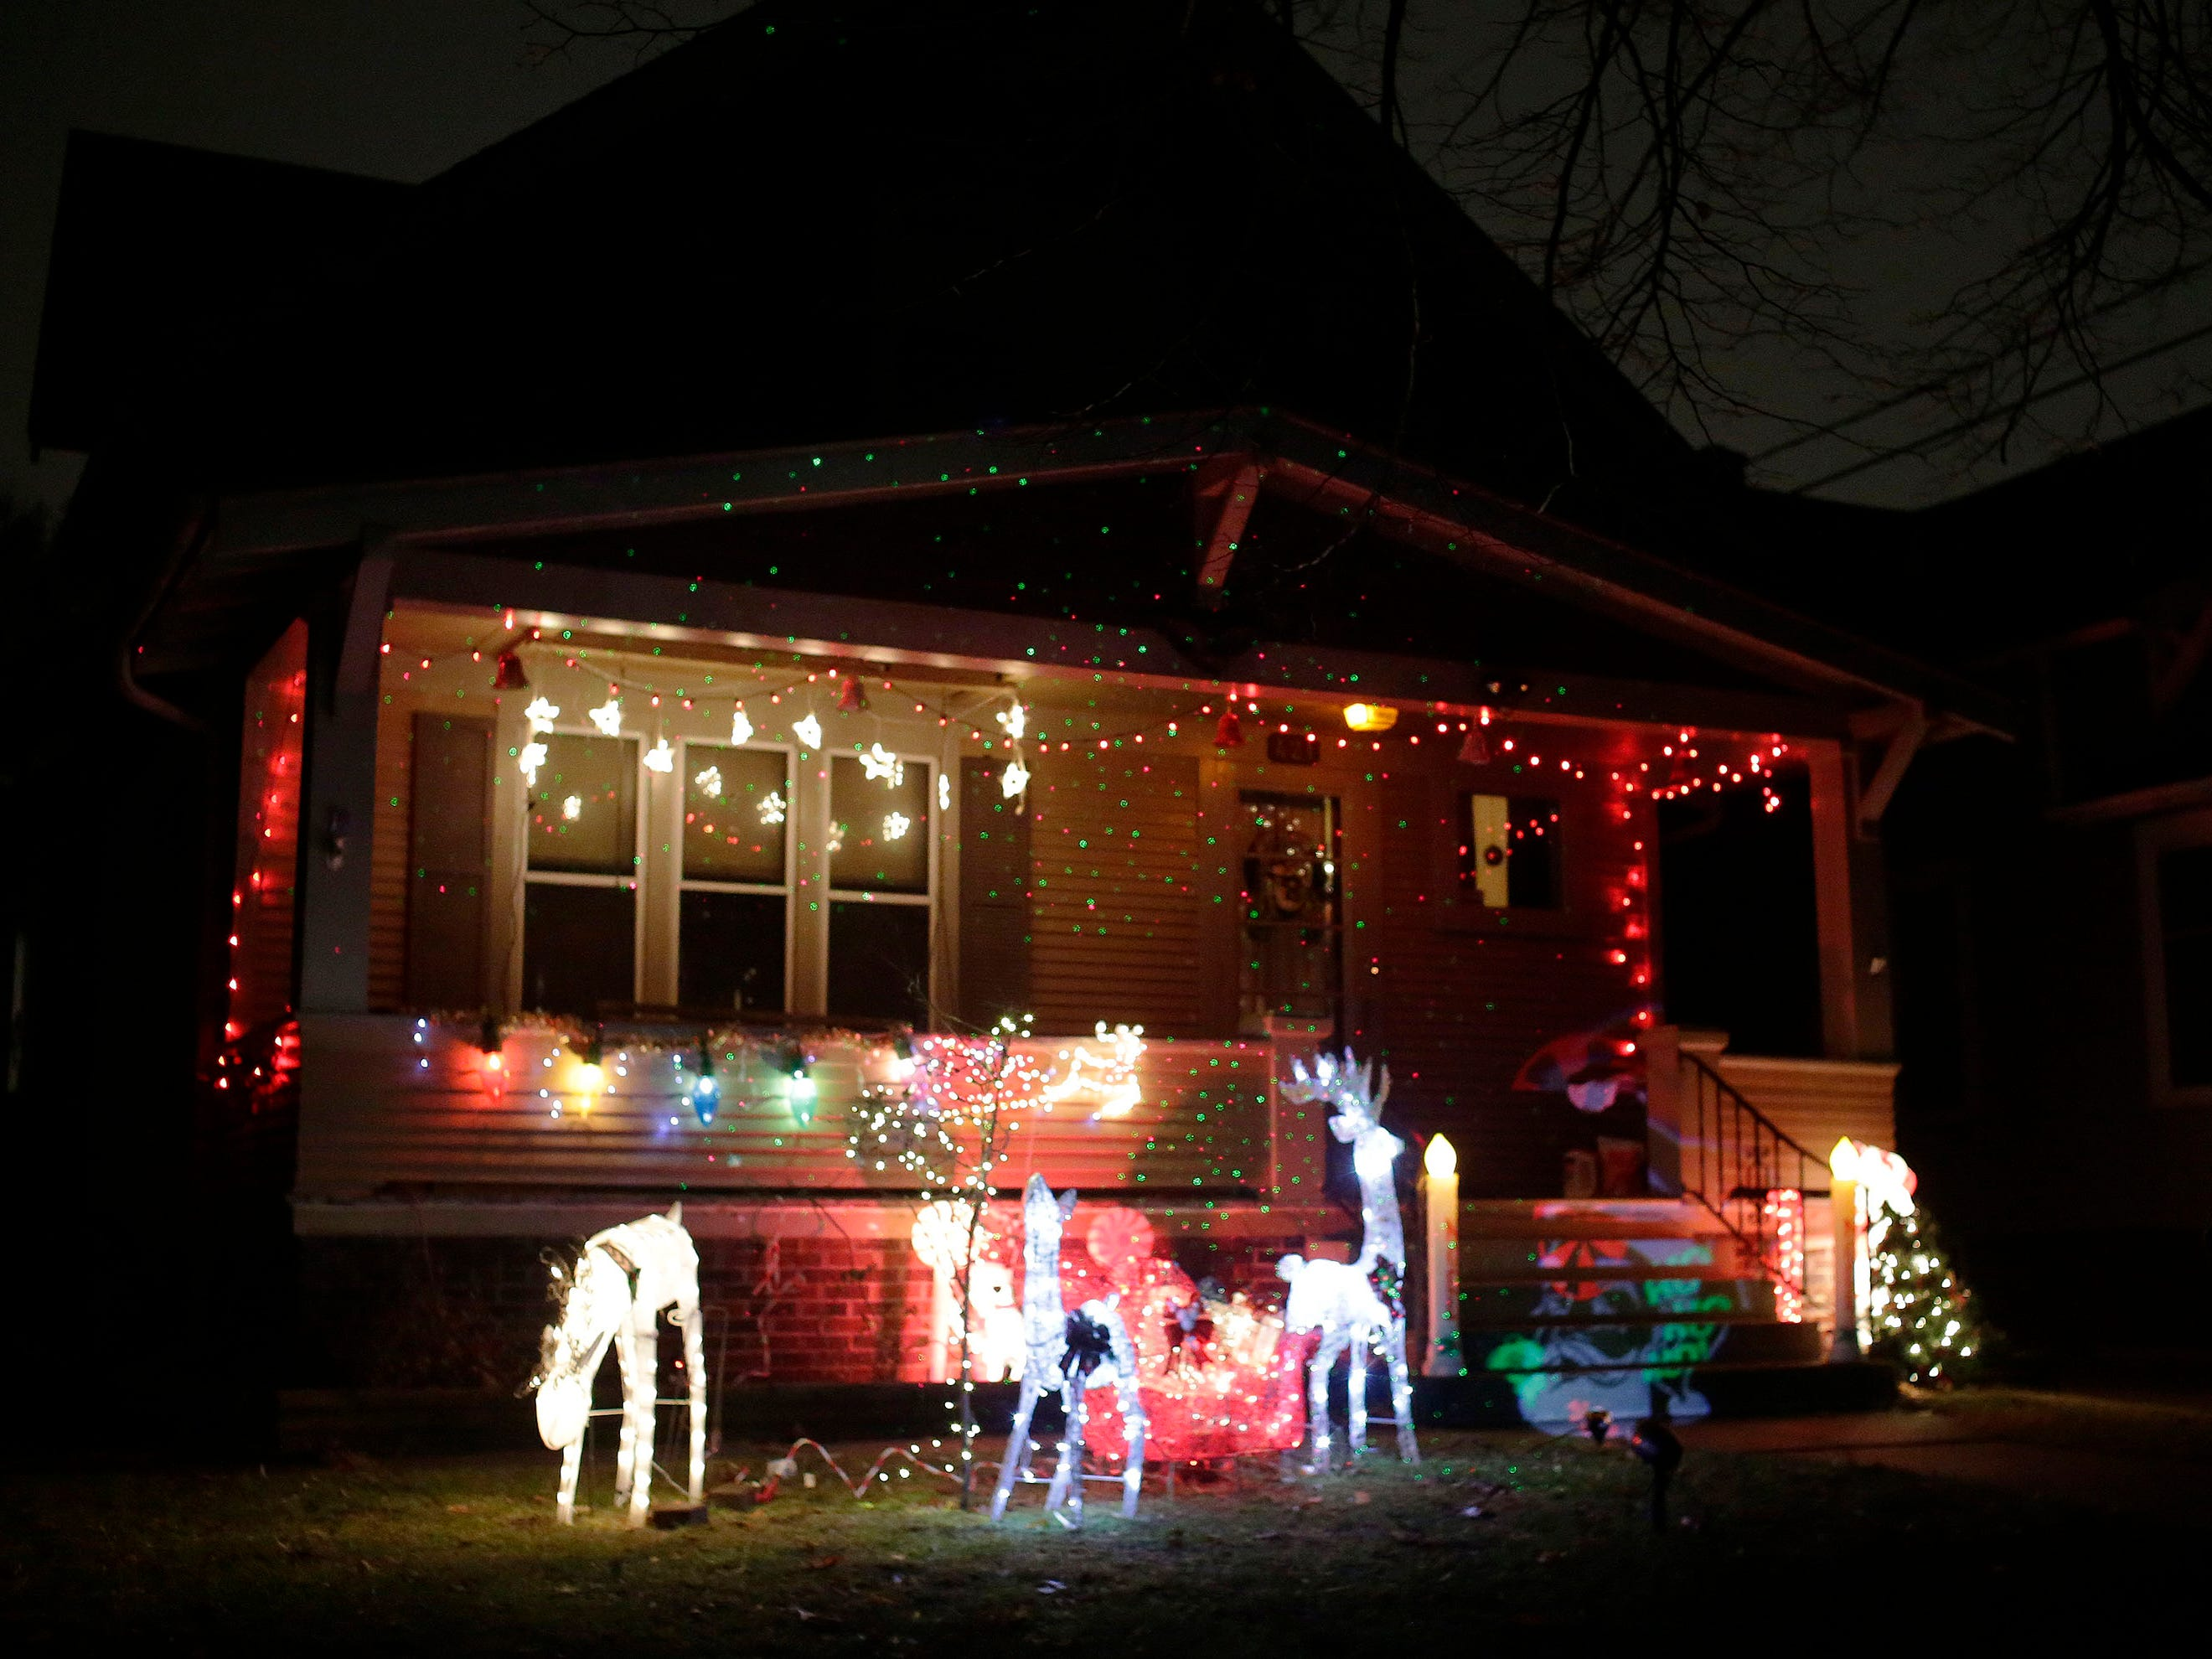 A home is decorated for the holidays on Grant Street, Thursday, December 20, 2018, in Sheboygan, Wis.